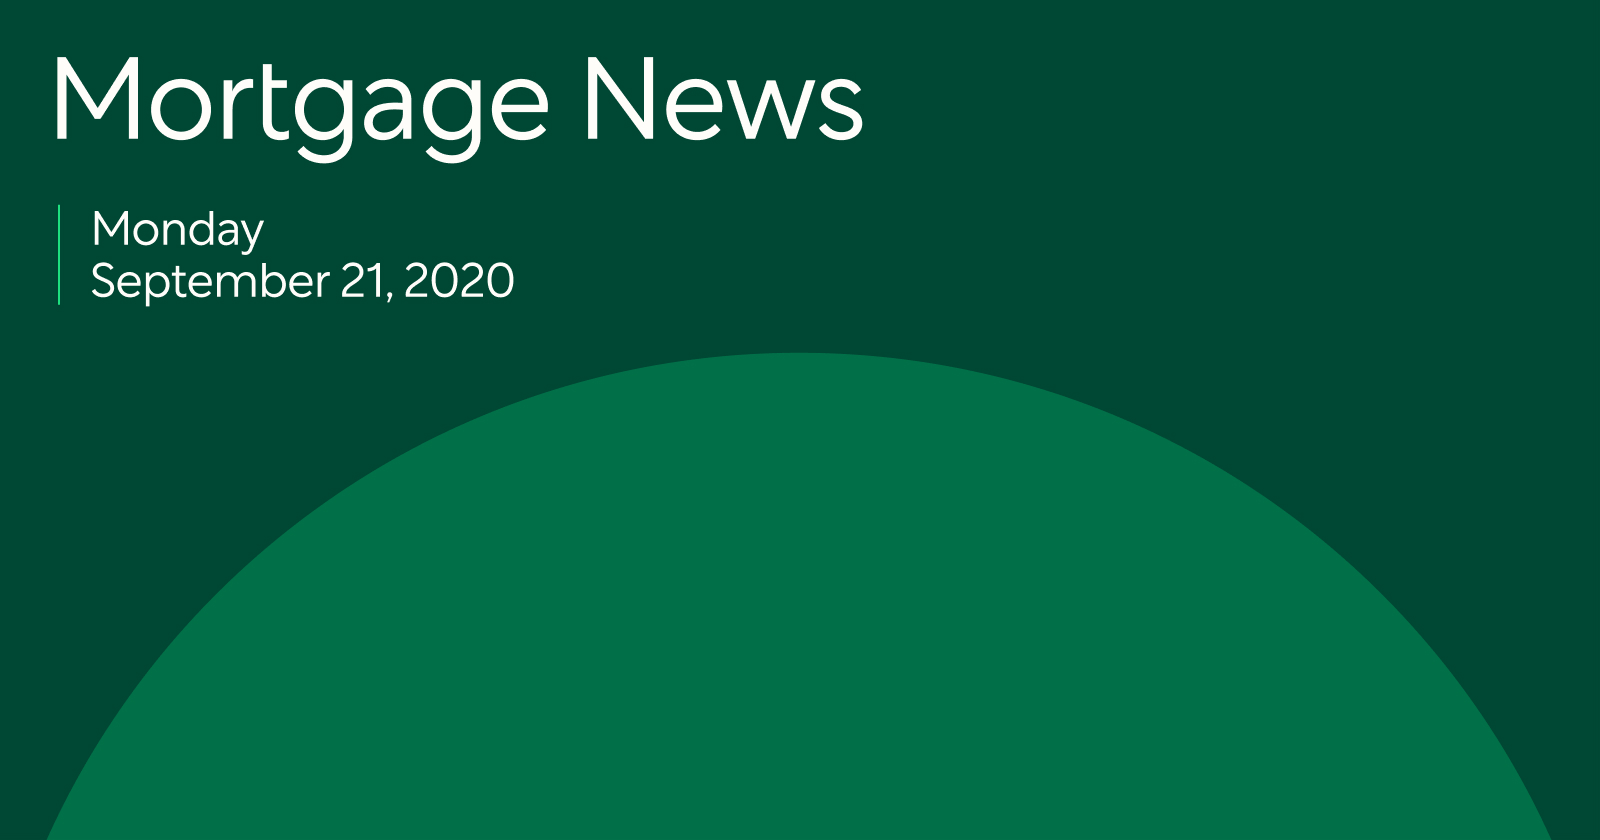 mortgage news 9/22